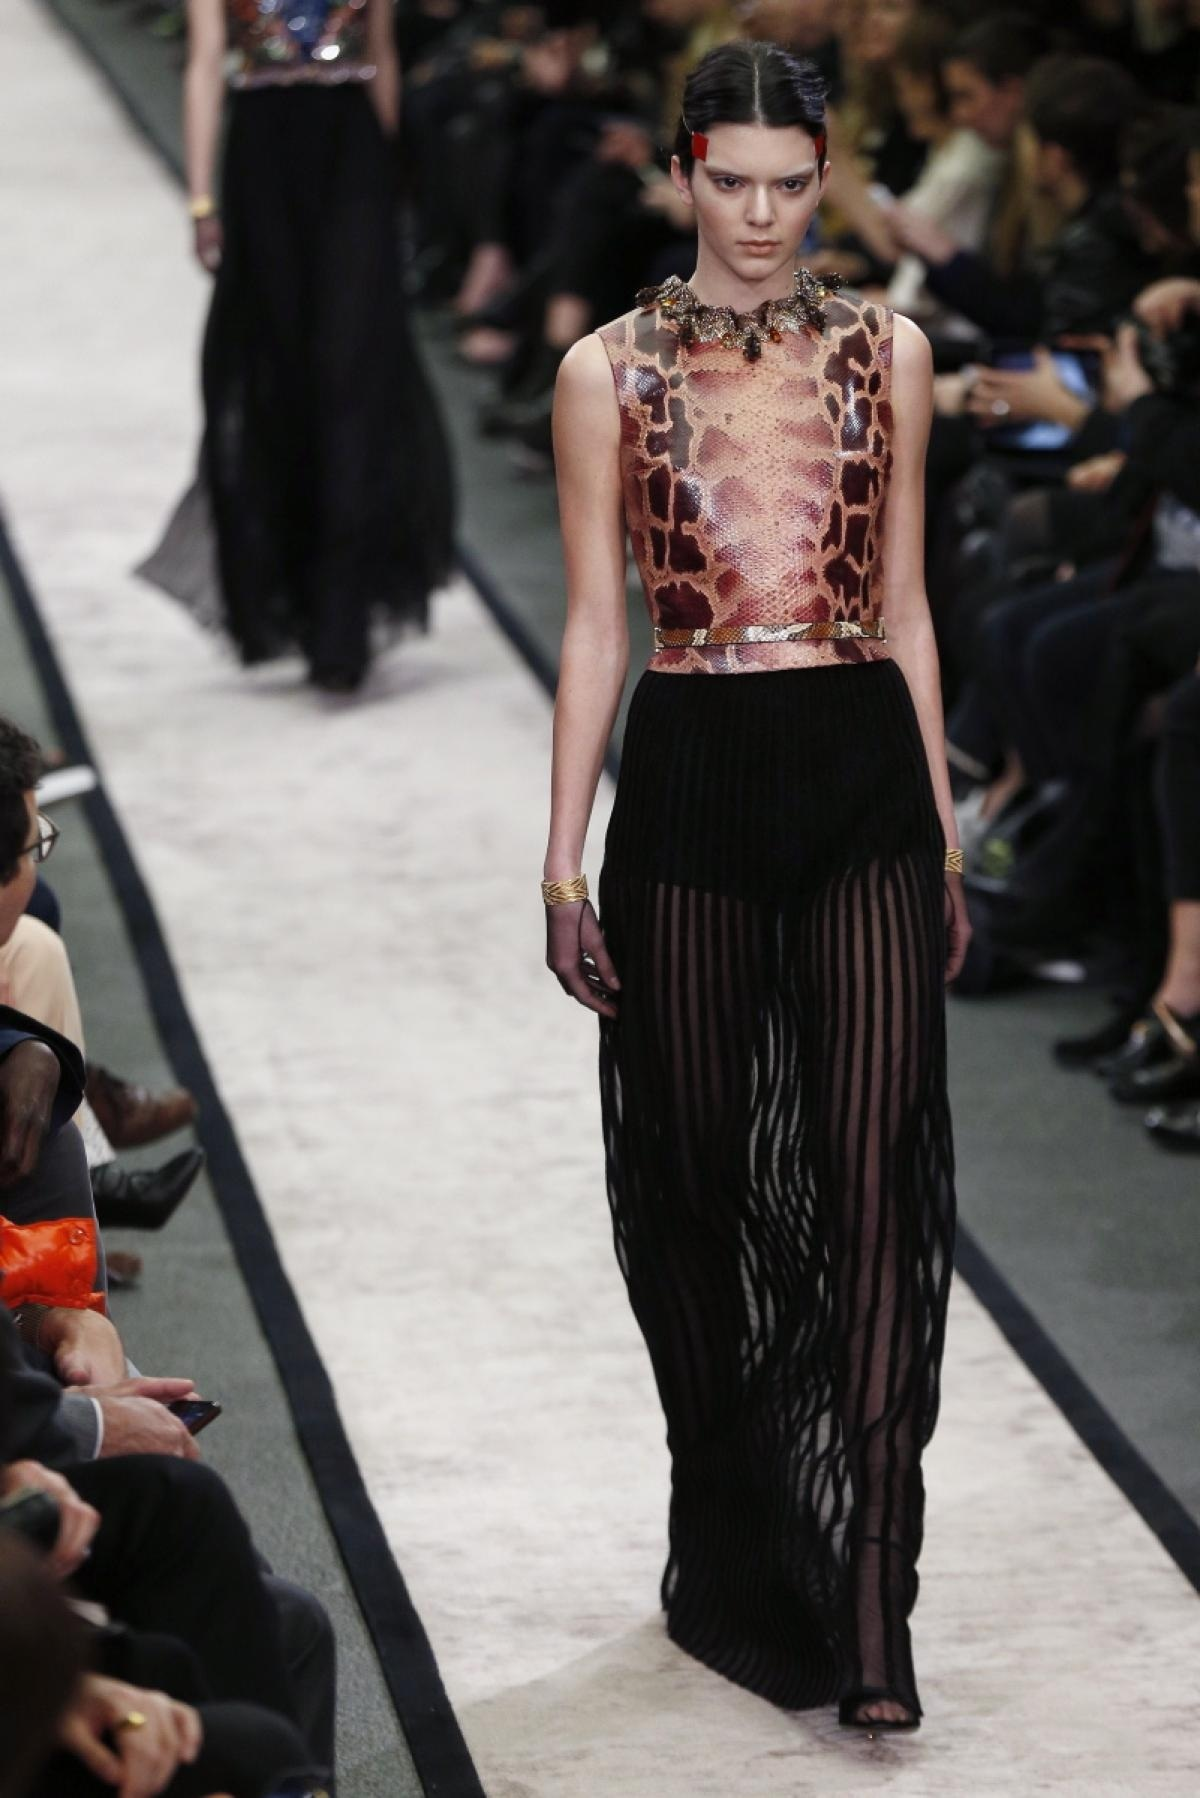 Kendall Jenner Givenchy Fall Show